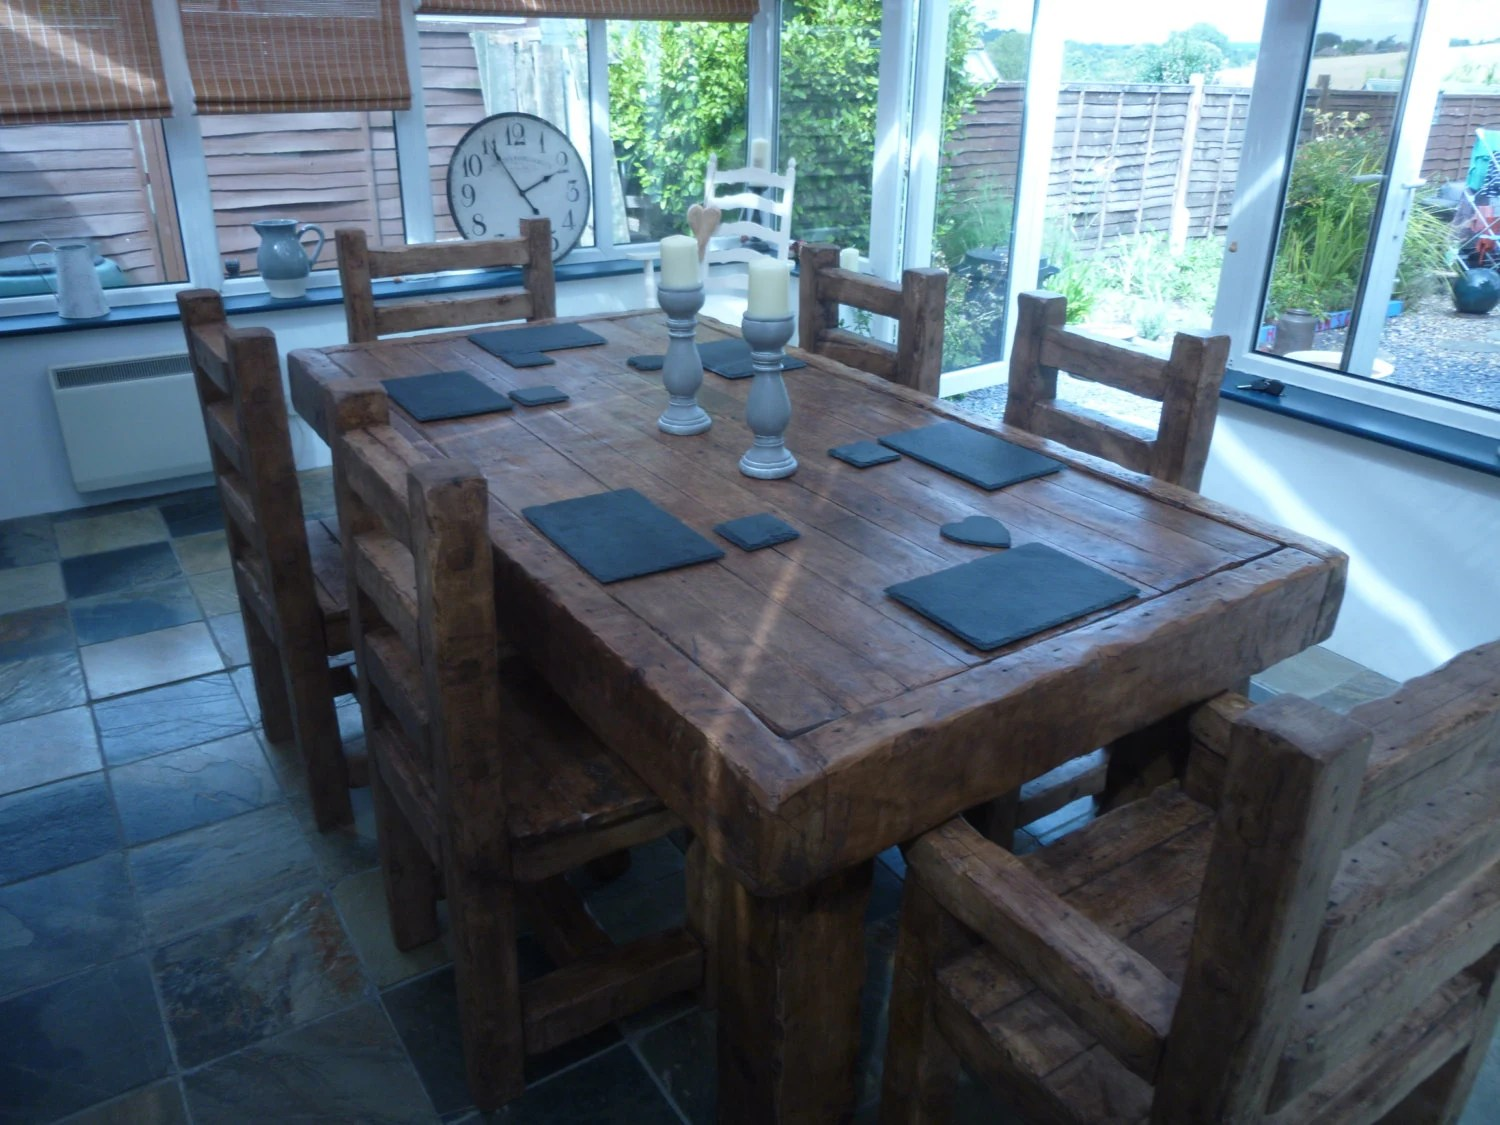 Rustic Handmade Dining Table With 6 Chairs Made Form Reclaimed